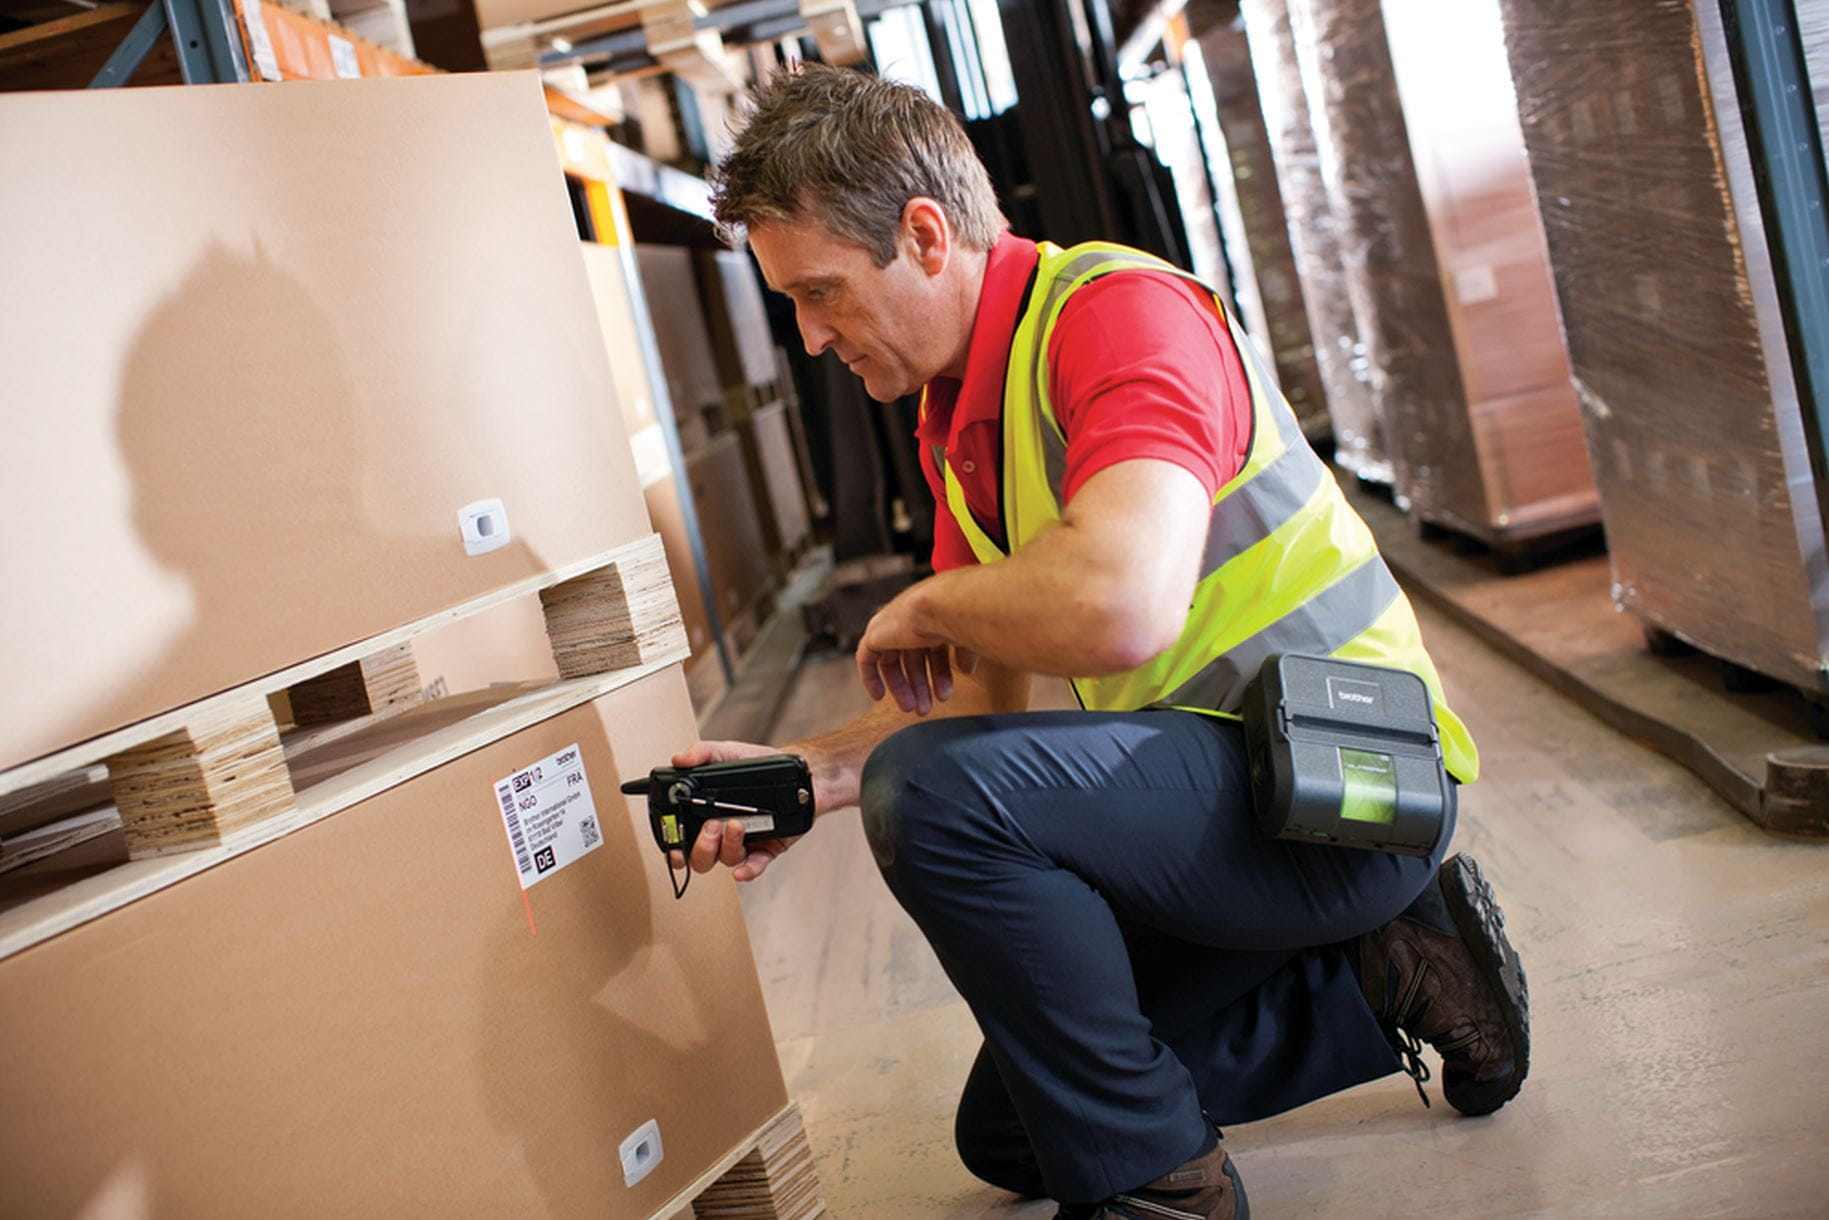 Warehouse worker scanning box label with RJ printer on belt clip